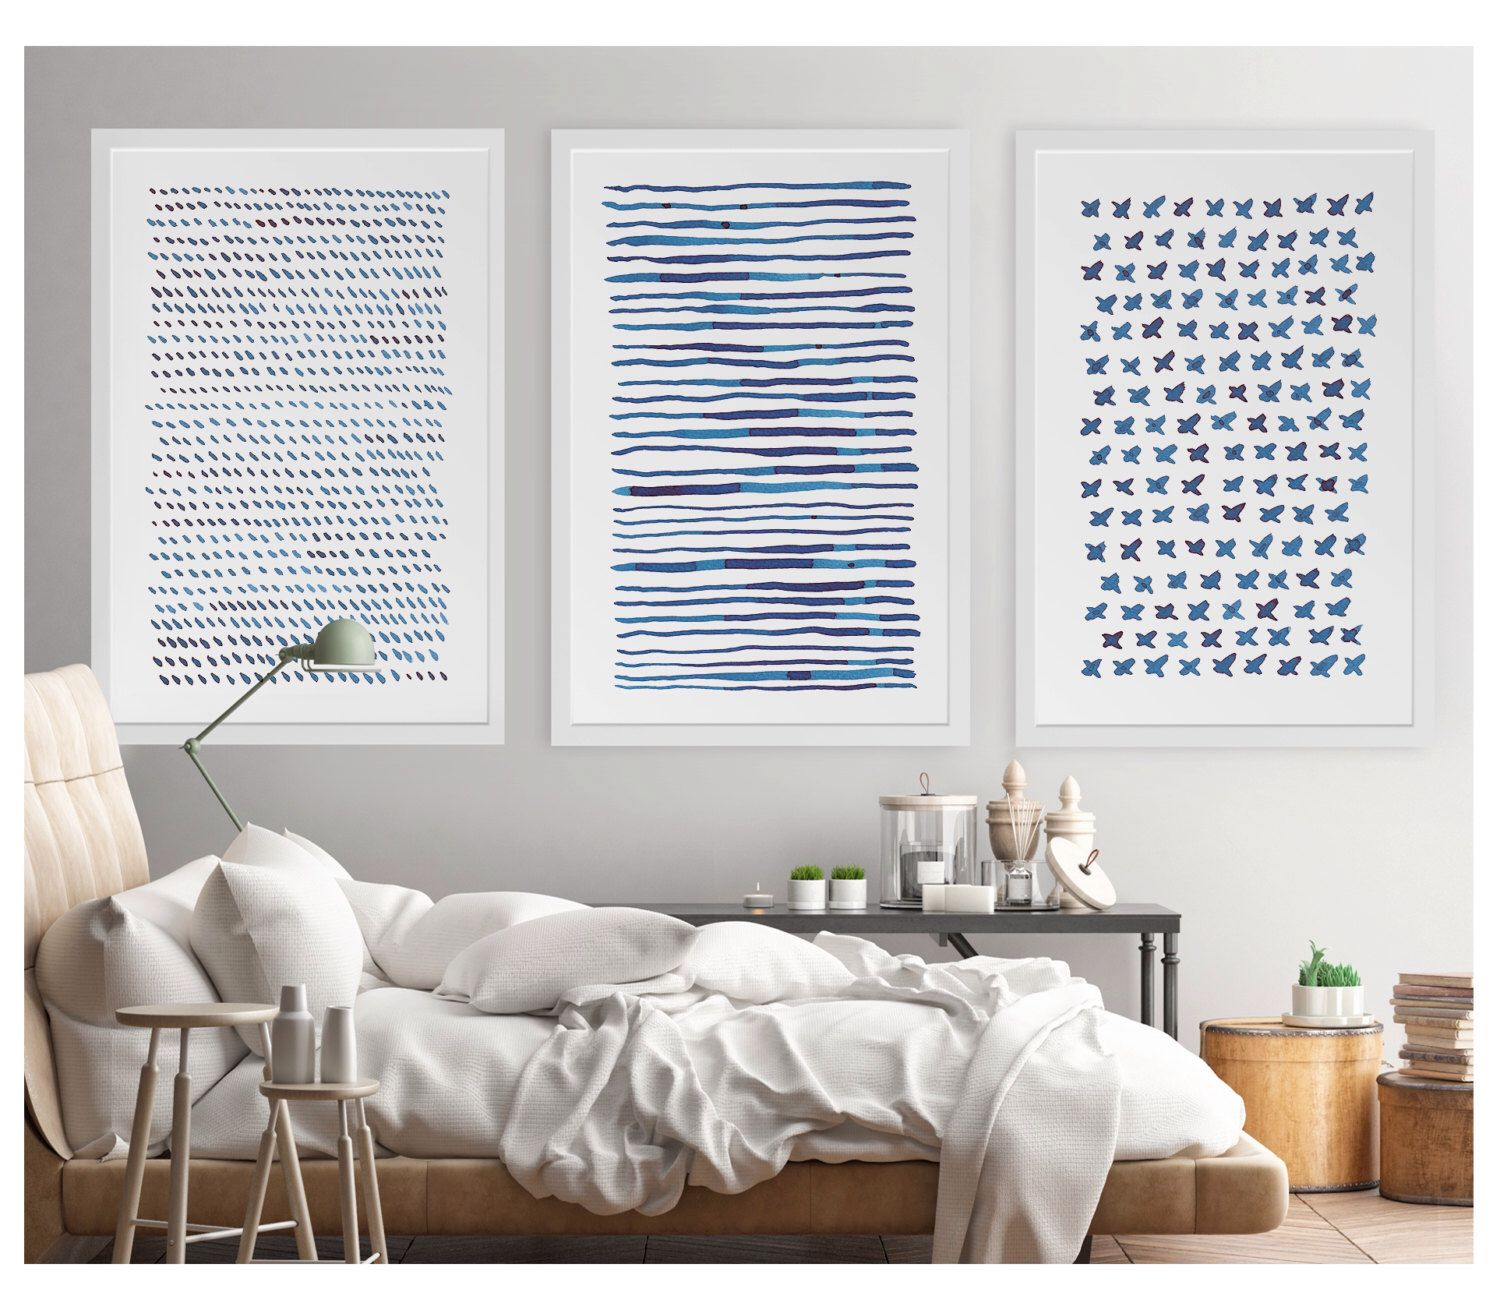 Abstract Wall Art, Large Abstract Art, 24x36 Print Set, Blue Abstract Watercolor, Abstract Art Print, Minimalist Art, Large Print,Modern Art by YellowRedAndBlue on Etsy https://www.etsy.com/listing/479507160/abstract-wall-art-large-abstract-art